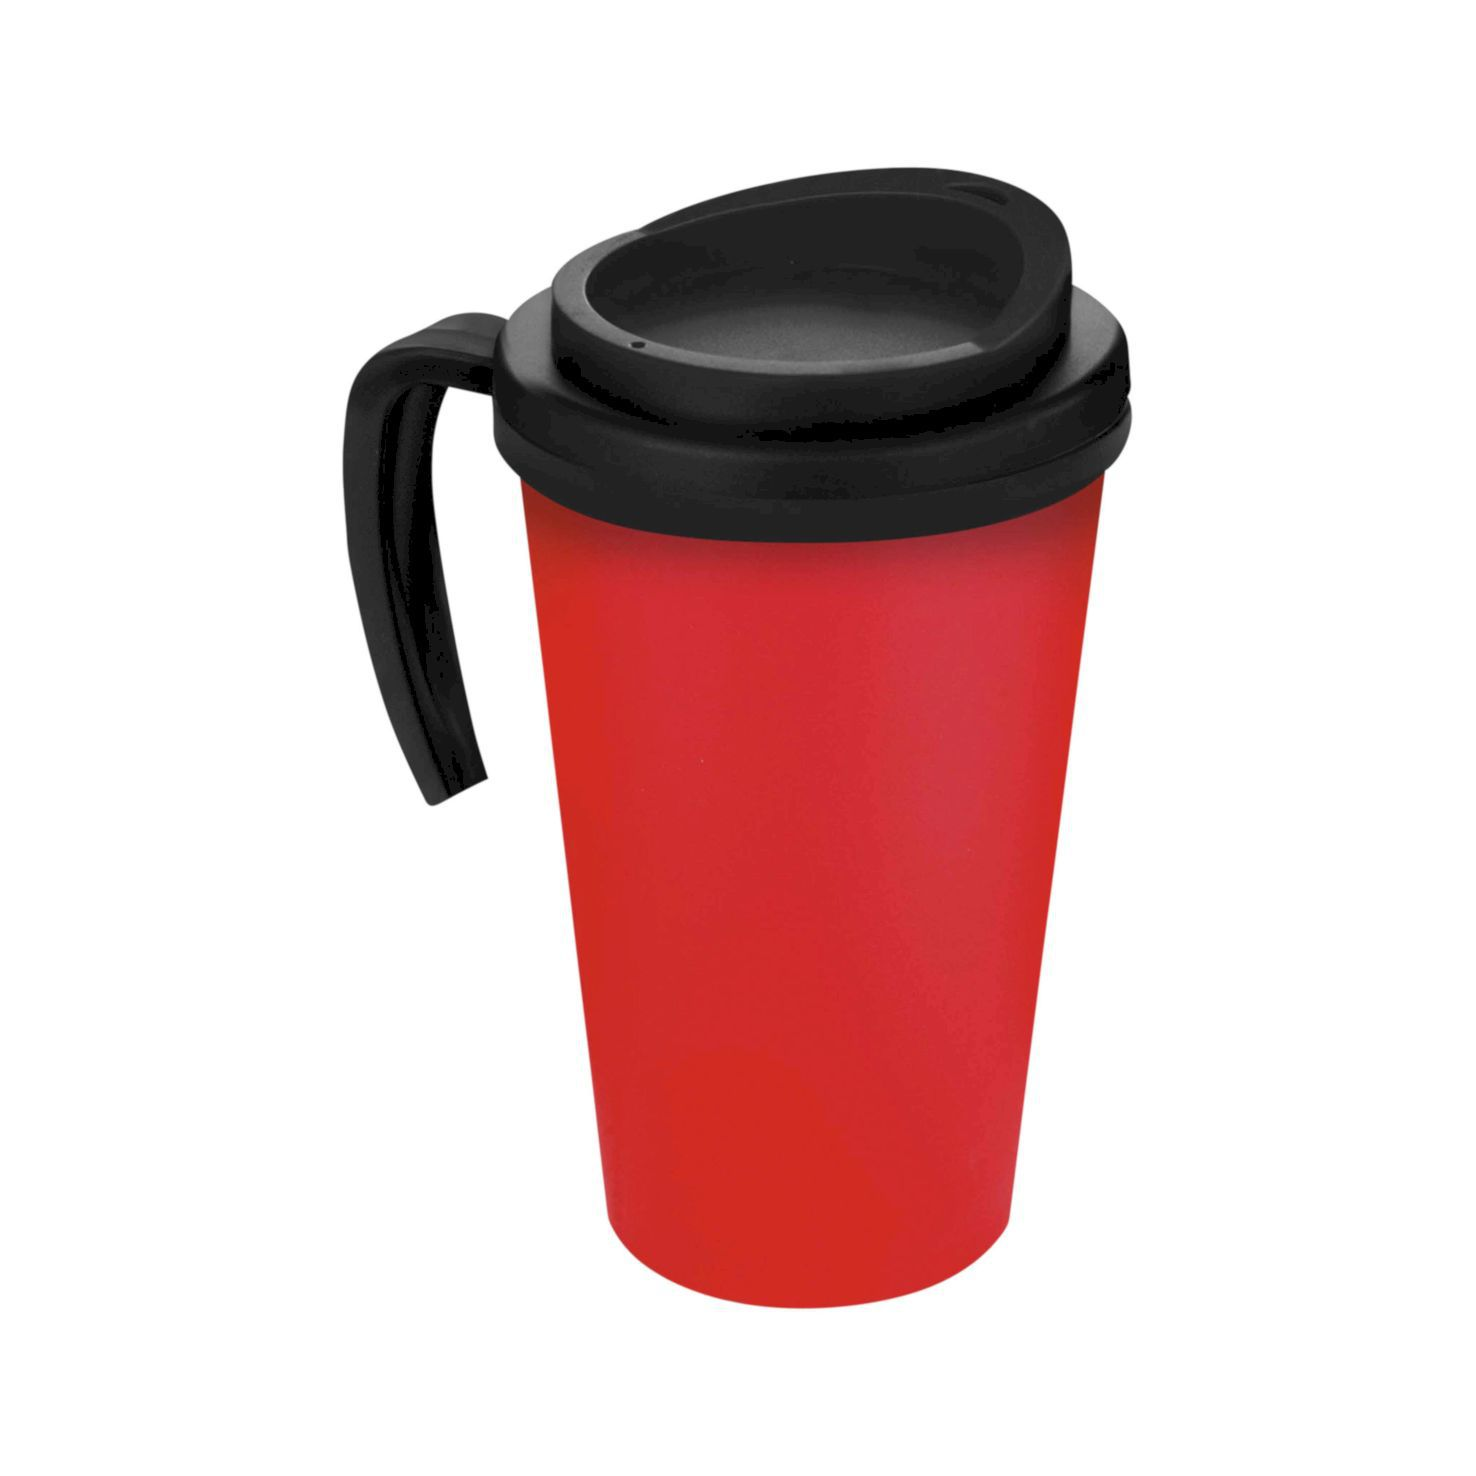 Rood / zwart Thermosbeker to go | Met handvat | 350 ml